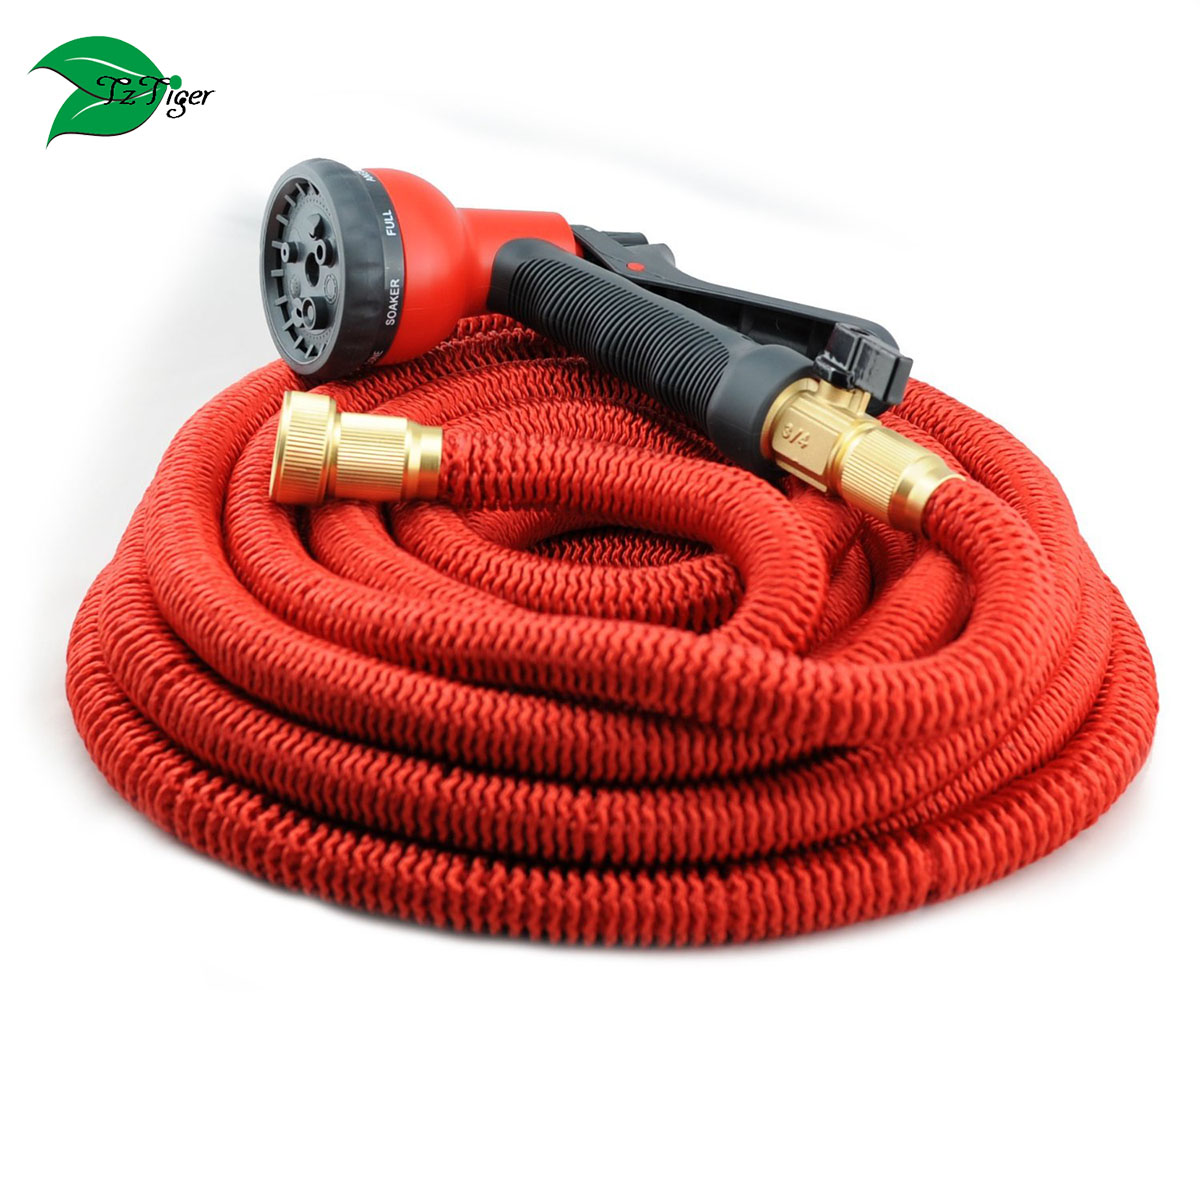 HEAVY DUTY 50' Feet Expandable Hose Set, Strongest Garden Hose With All Solid Brass latex garden hos